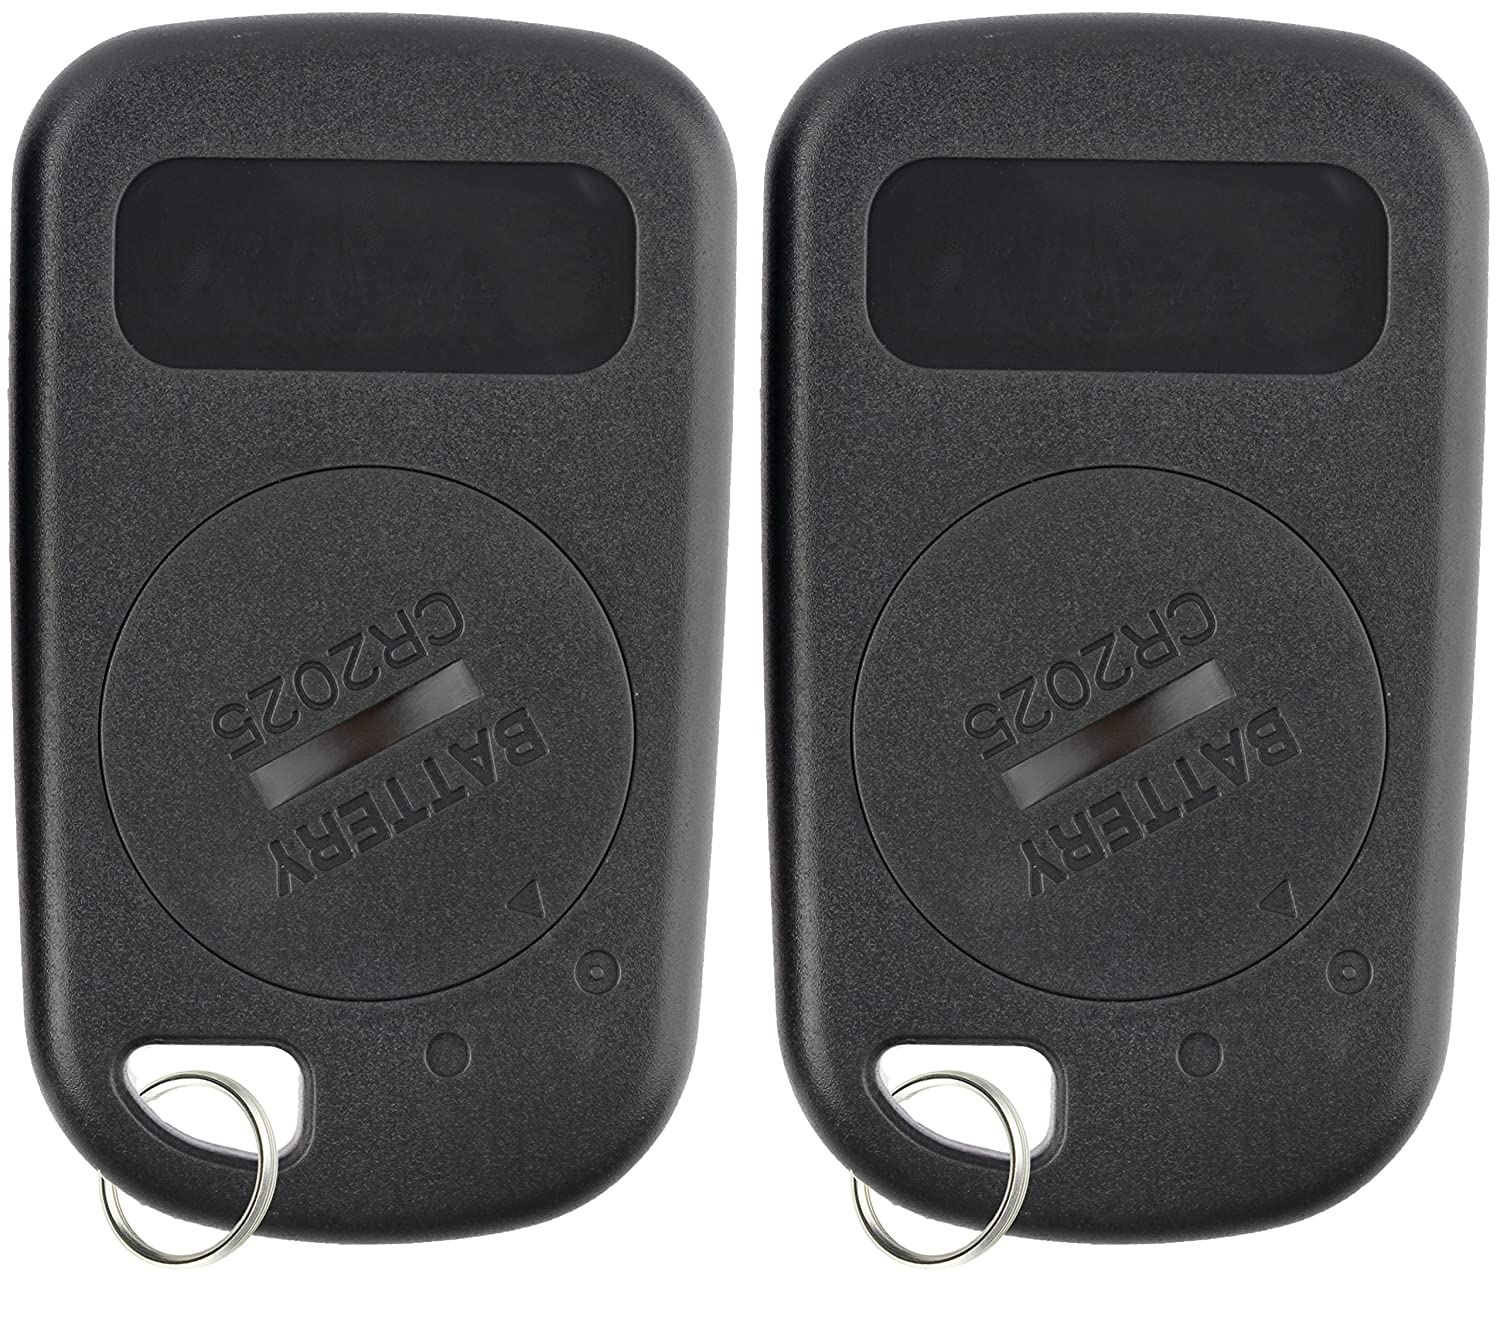 Pack of 2 KeylessOption Keyless Entry Remote Control Car Key Fob Replacement for OUCG8D-440H-A